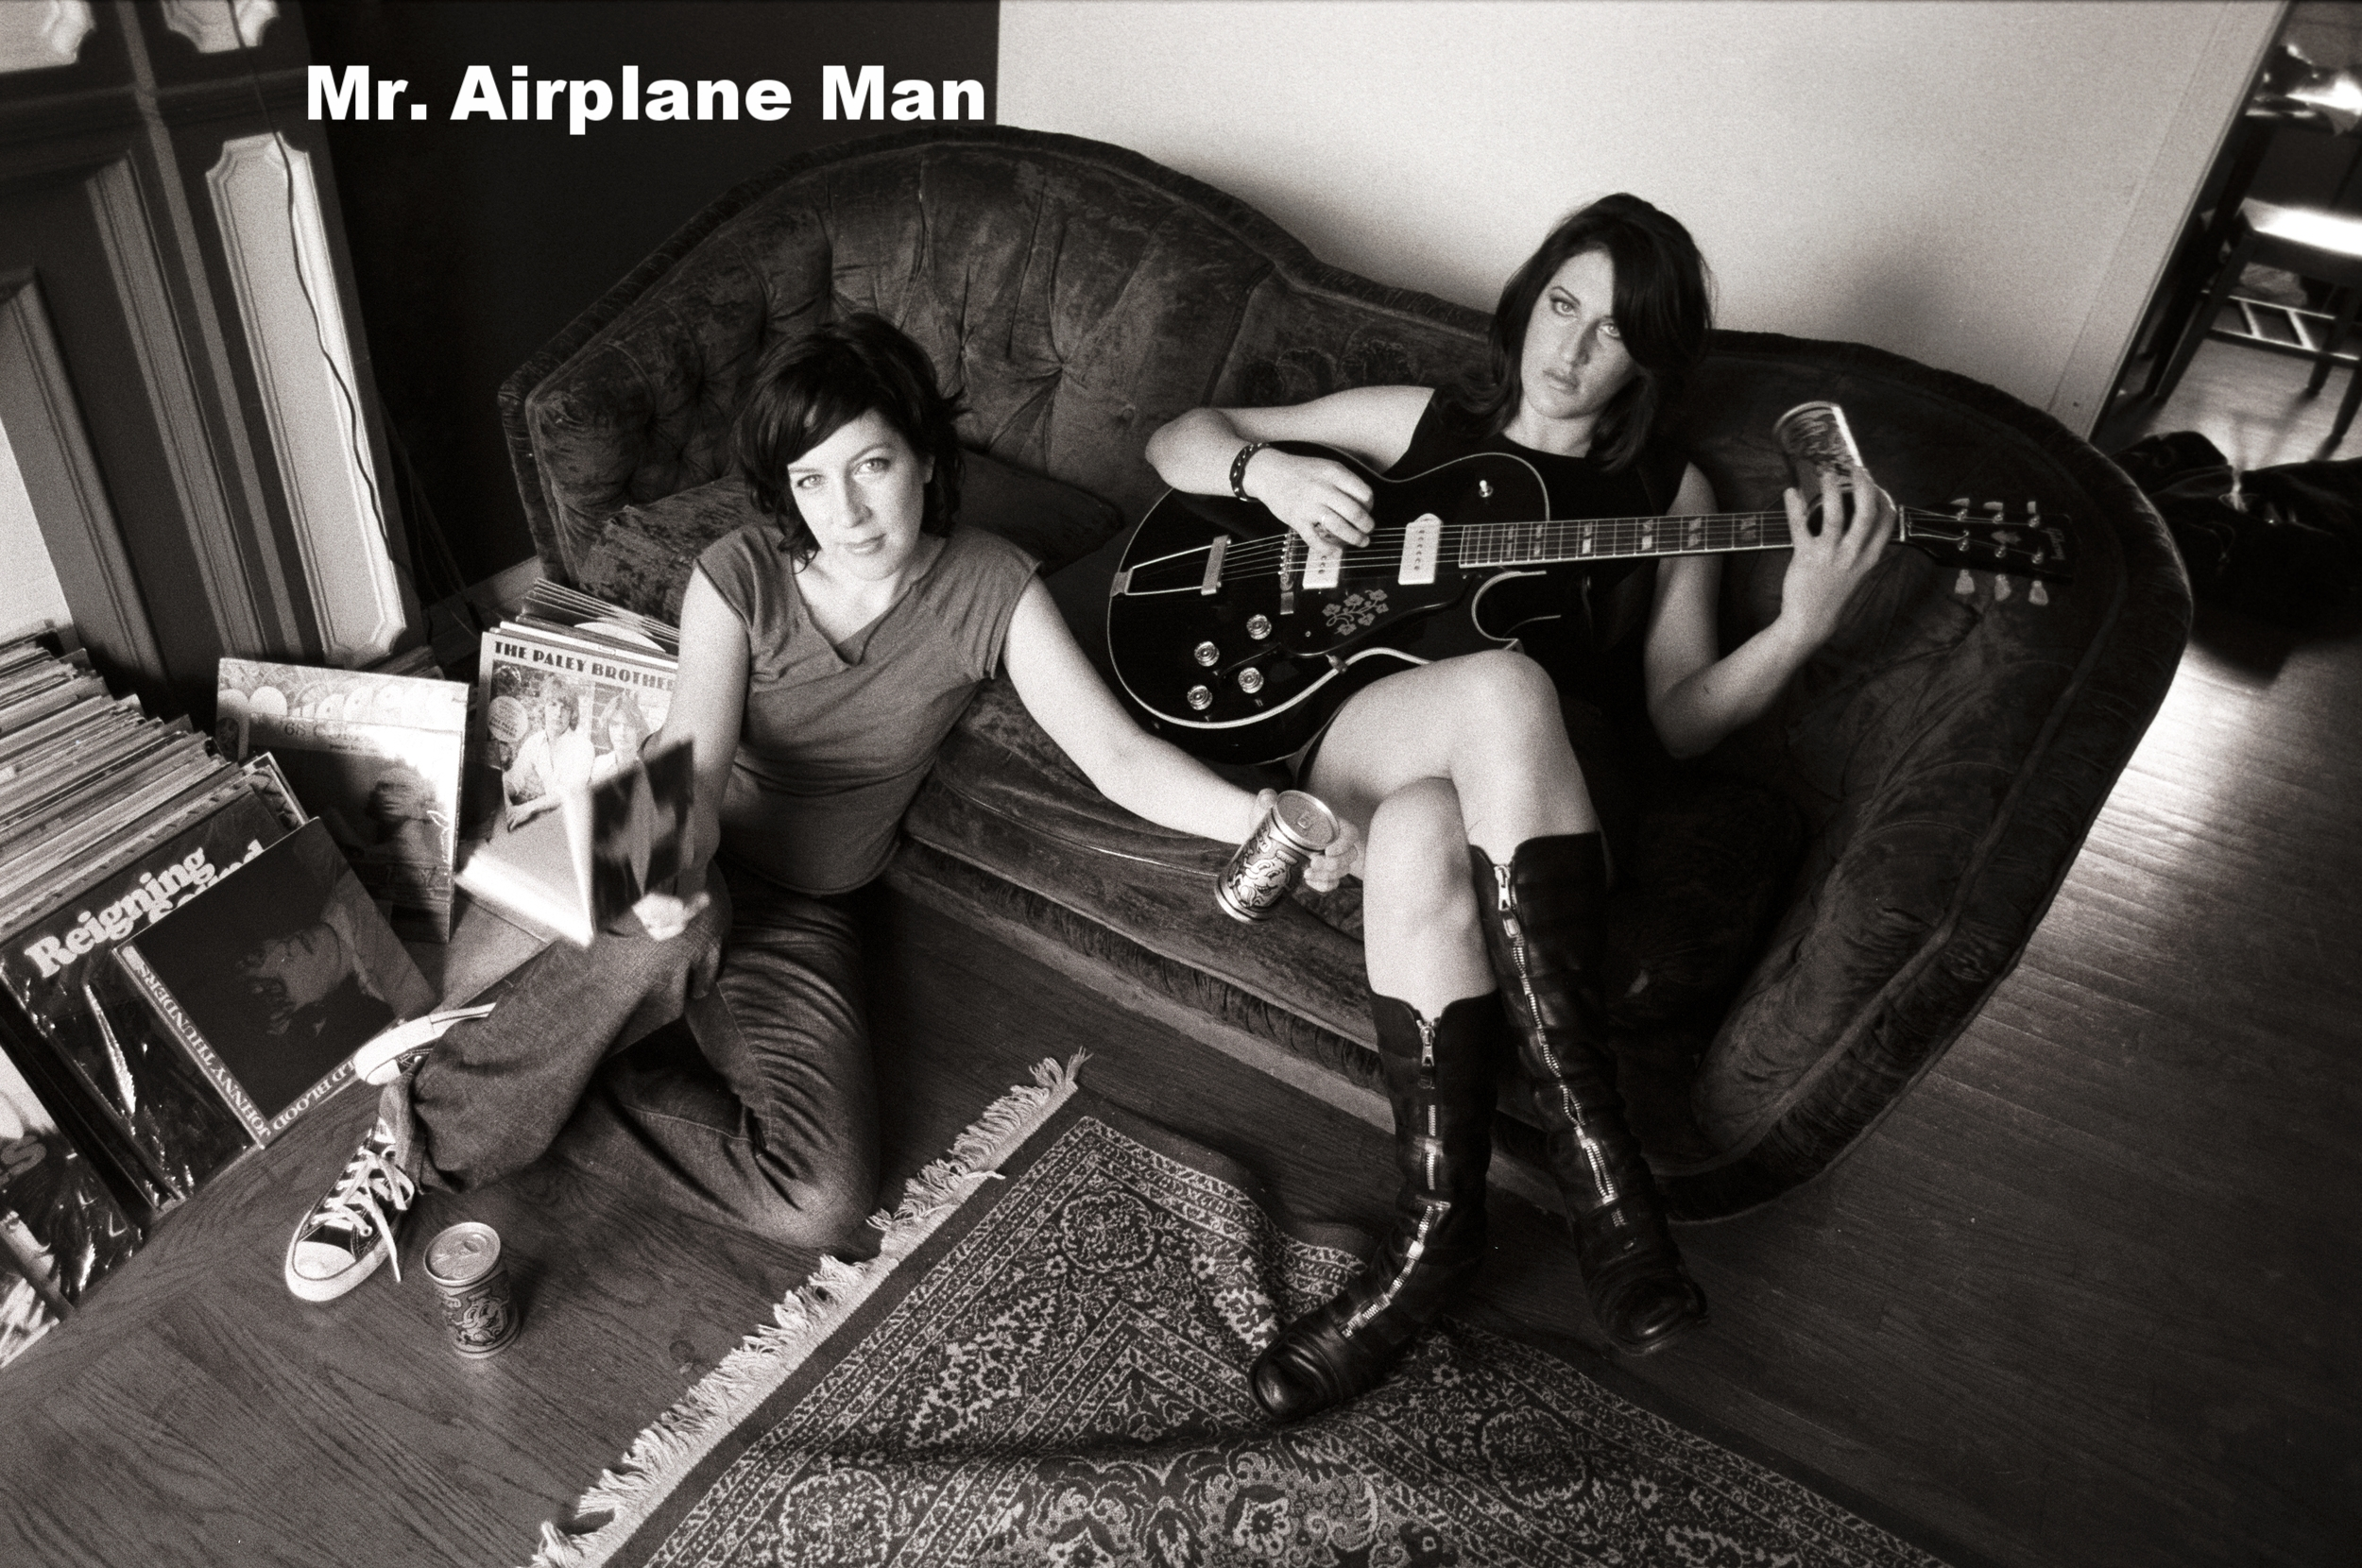 Mr. Airplane Man